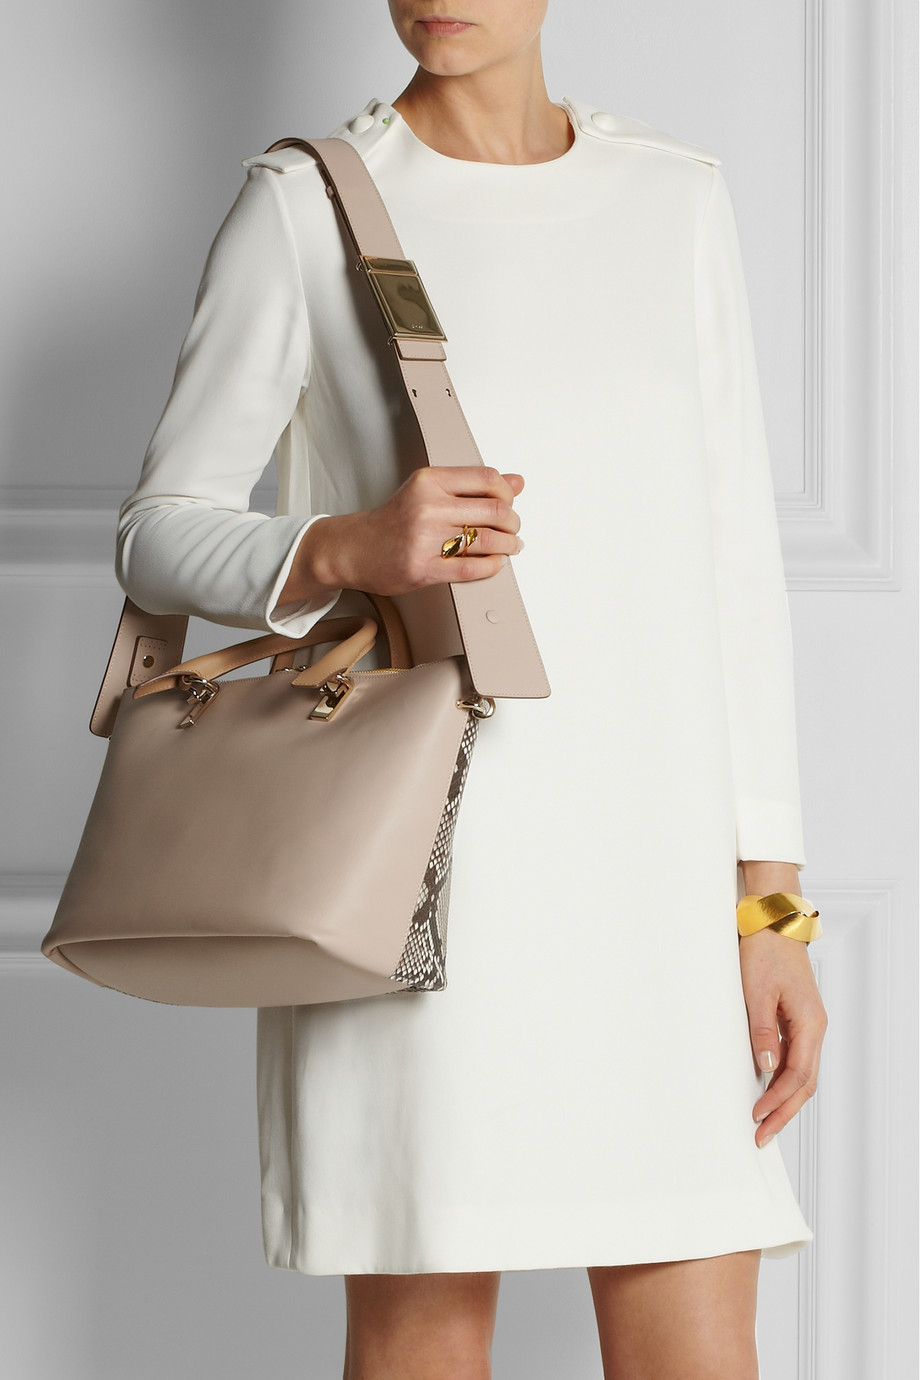 Chlo¨¦ Baylee Medium Python and Leather Tote in Beige (Neutrals) | Lyst